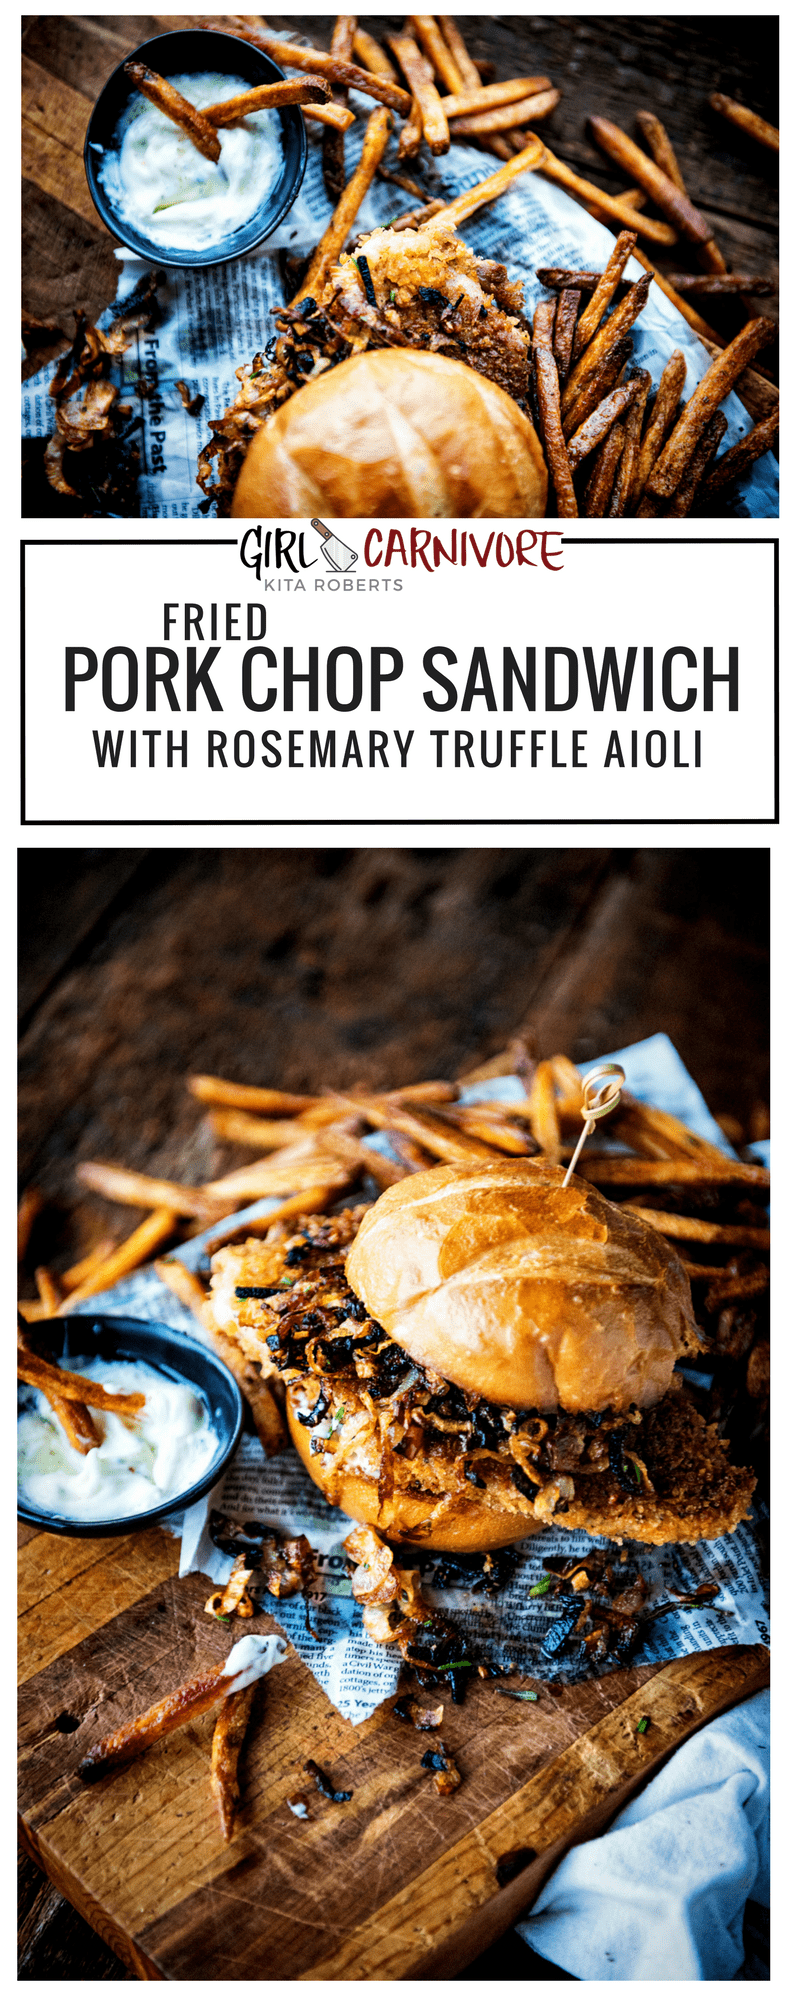 FRIED PORK CHOP SANDWICH WITH ROSEMARY TRUFFLE AIOLI | Recipe GirlCarnivore.com